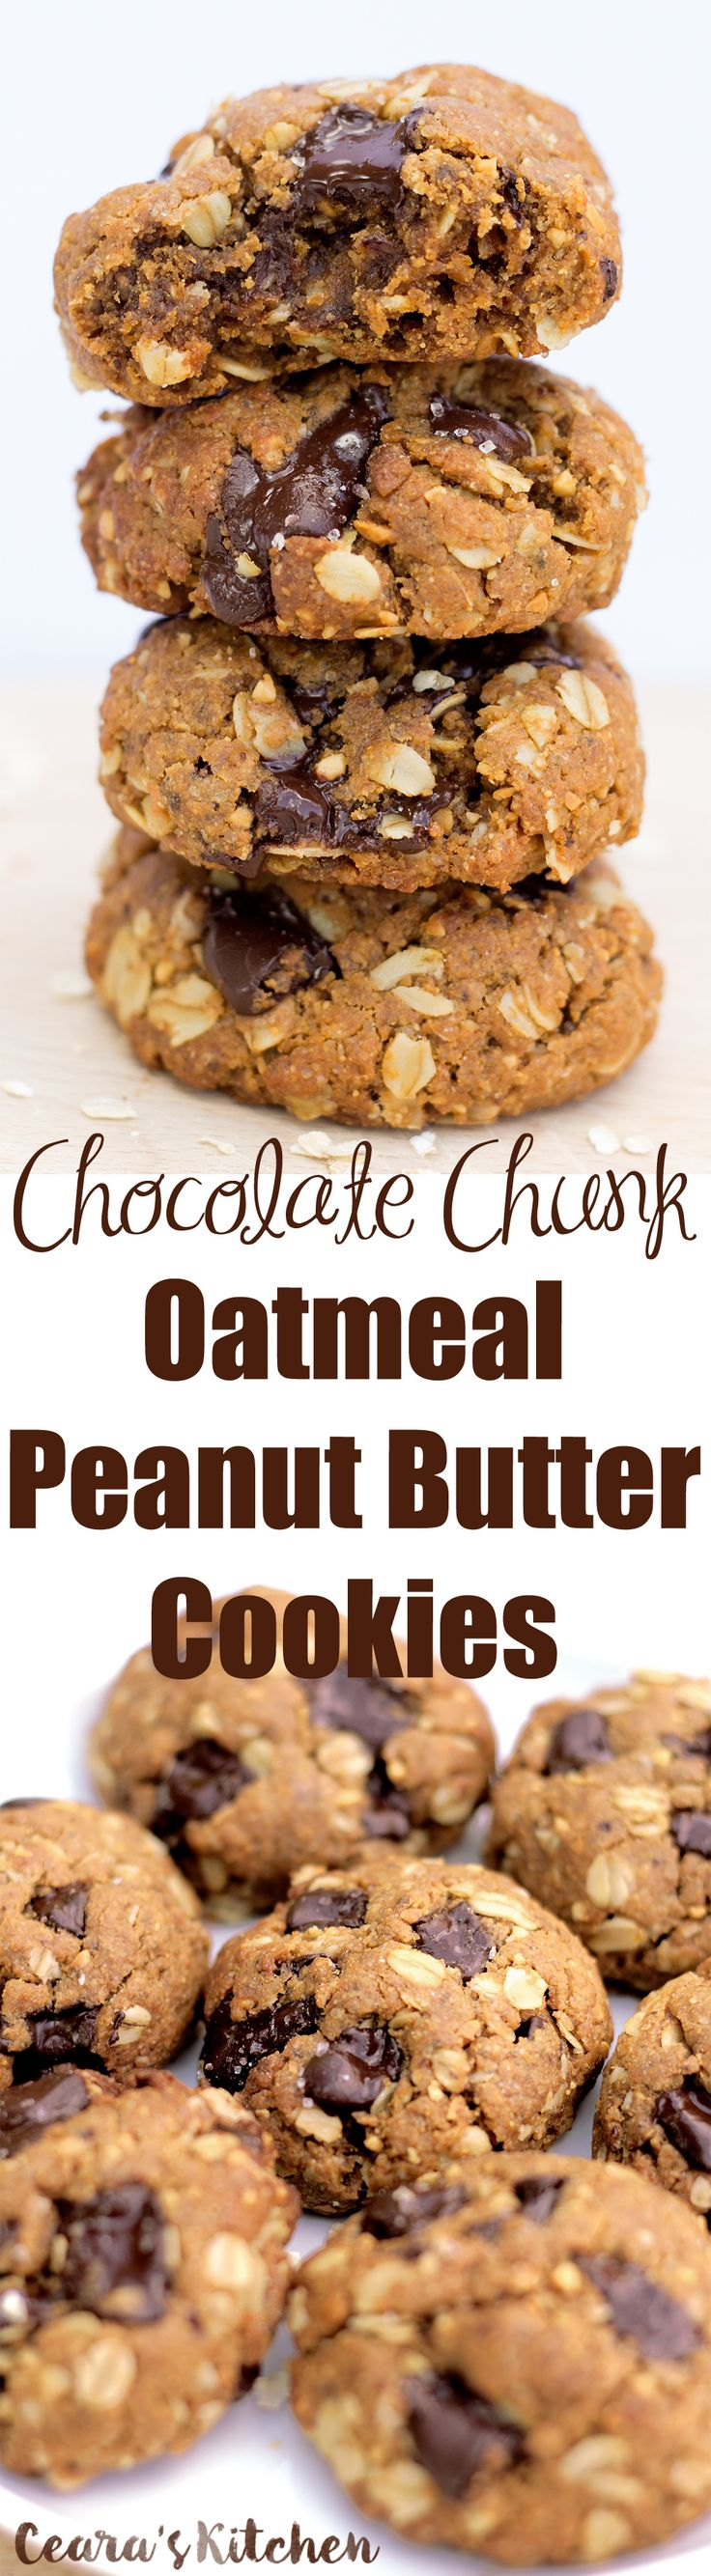 Chocolate Chunk Oatmeal Peanut Butter Cookies Vegan Gluten ...